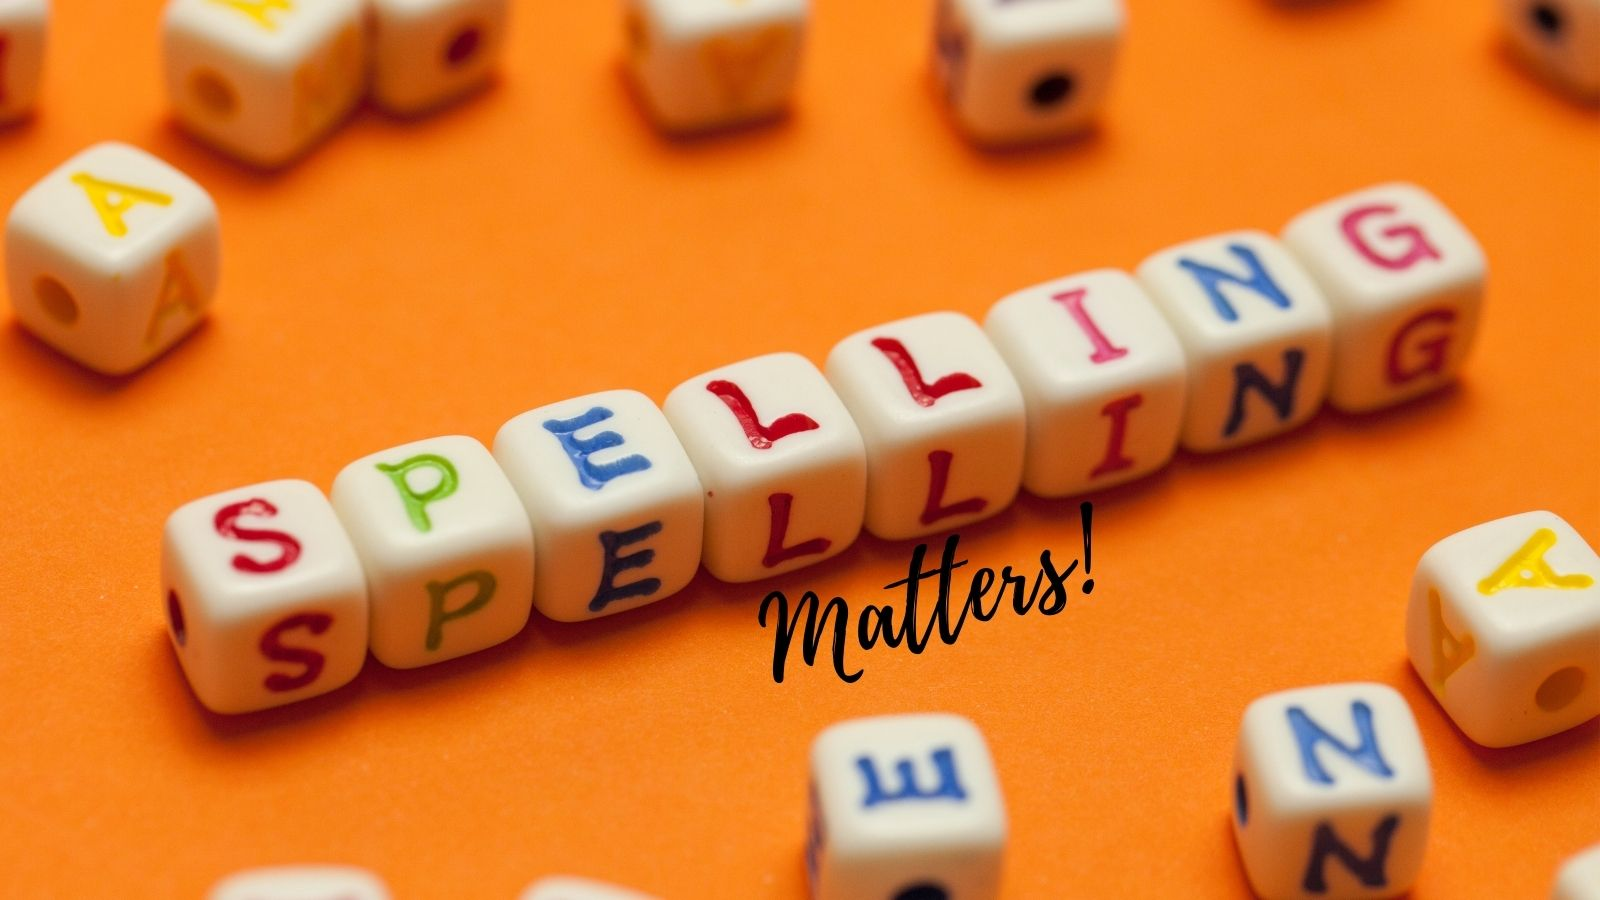 spelling matters on blog categories and tags